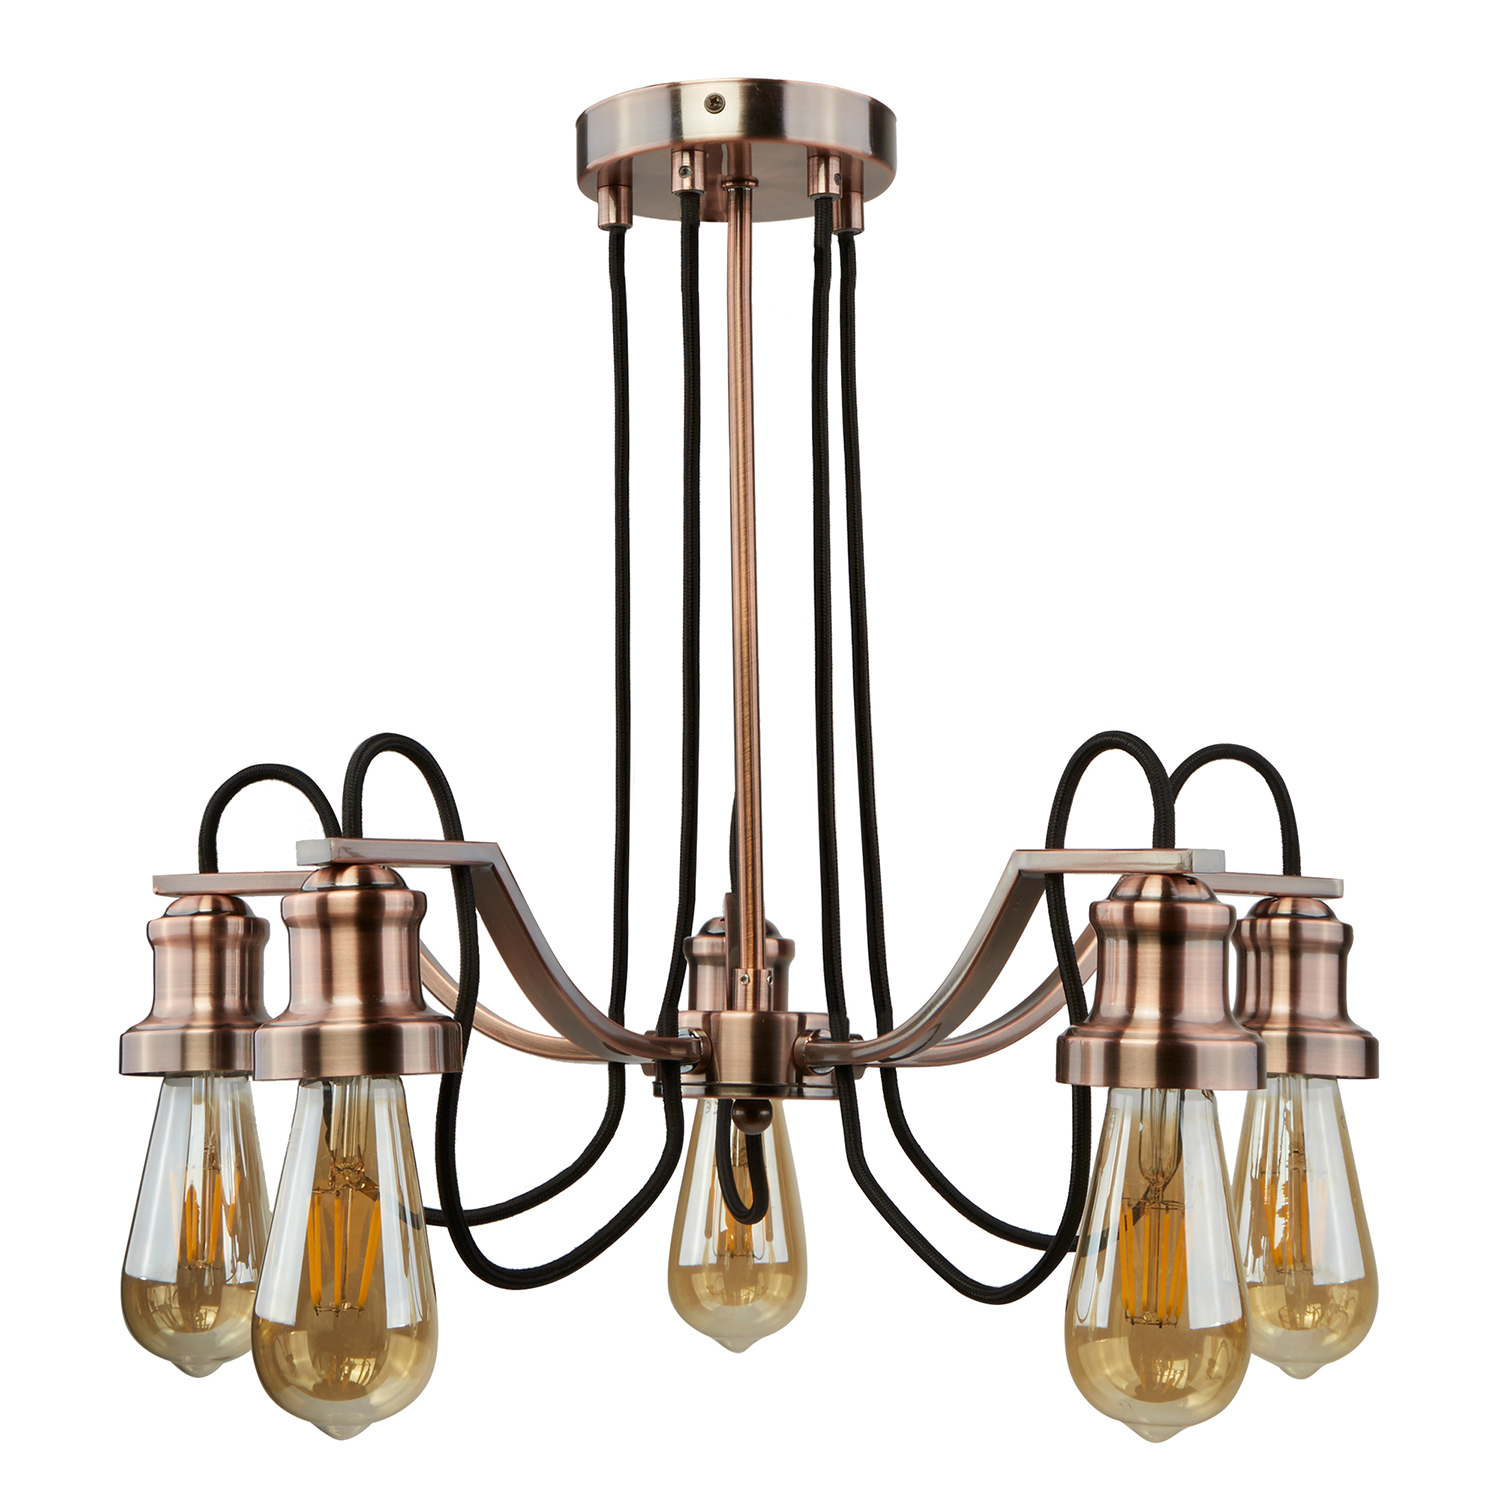 Image of 5 Light Ceiling Braded Fabric, Antique Copper